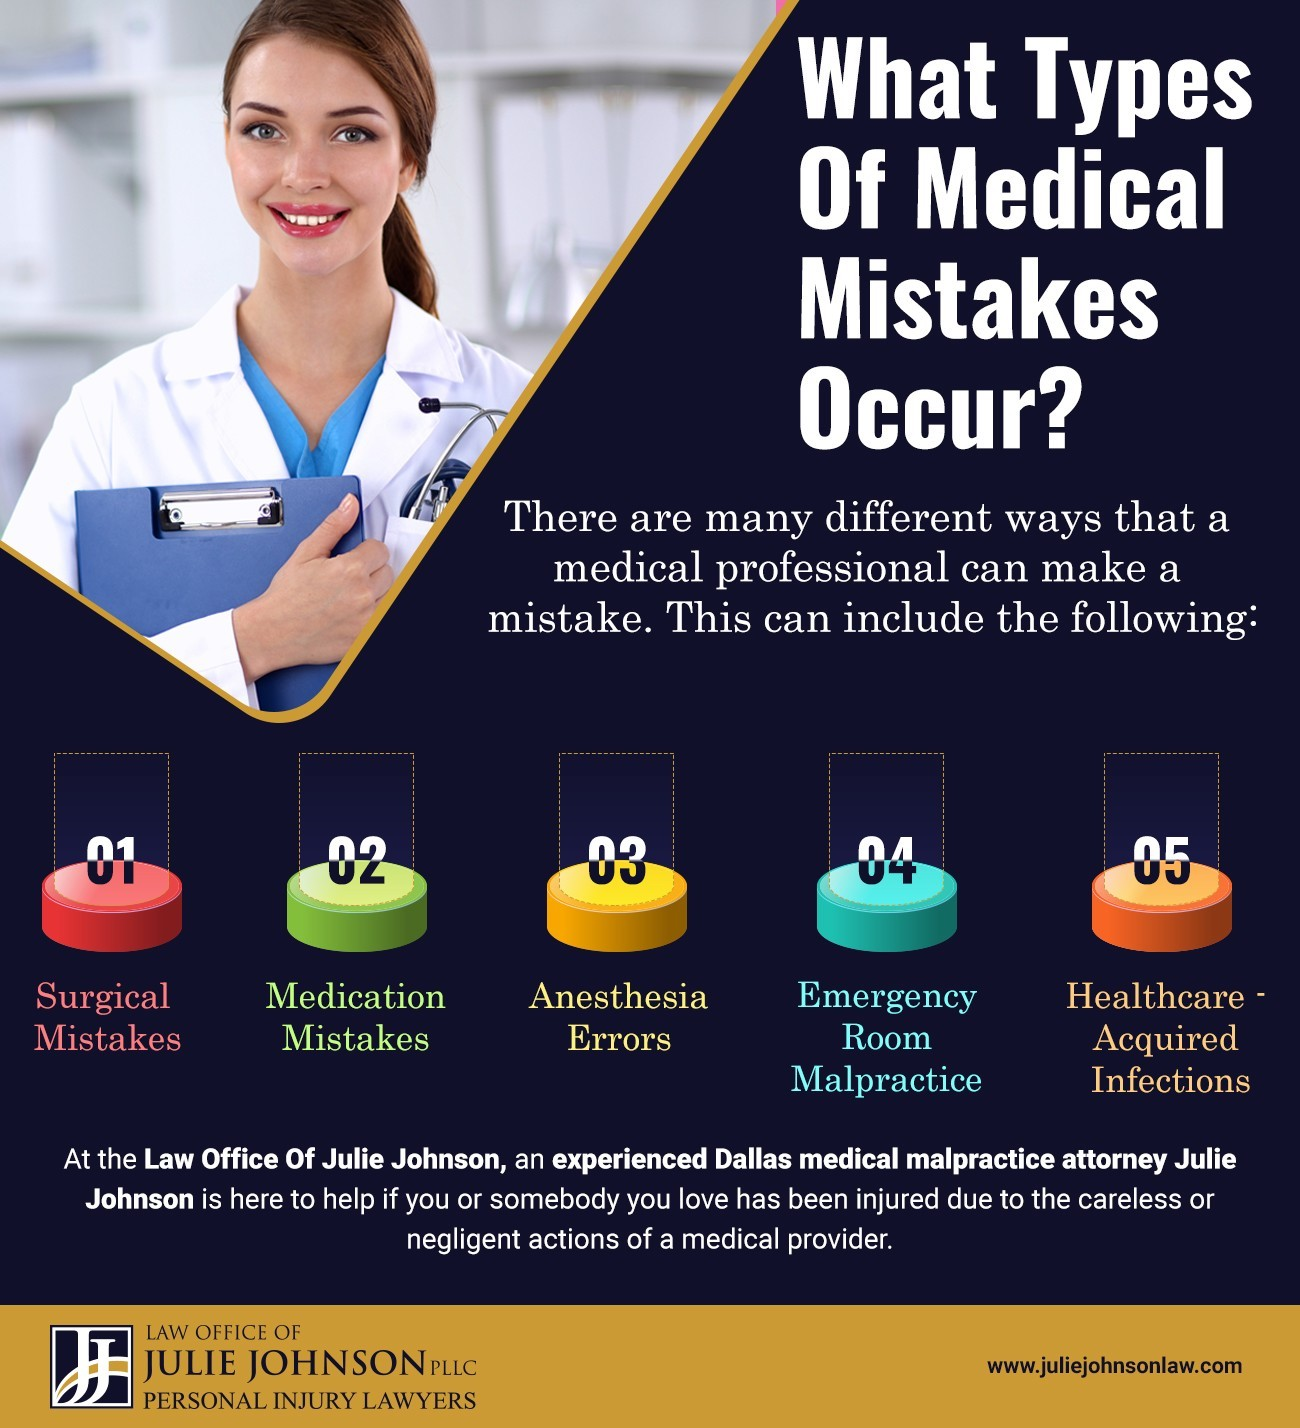 What Types Of Medical Mistakes Occur?